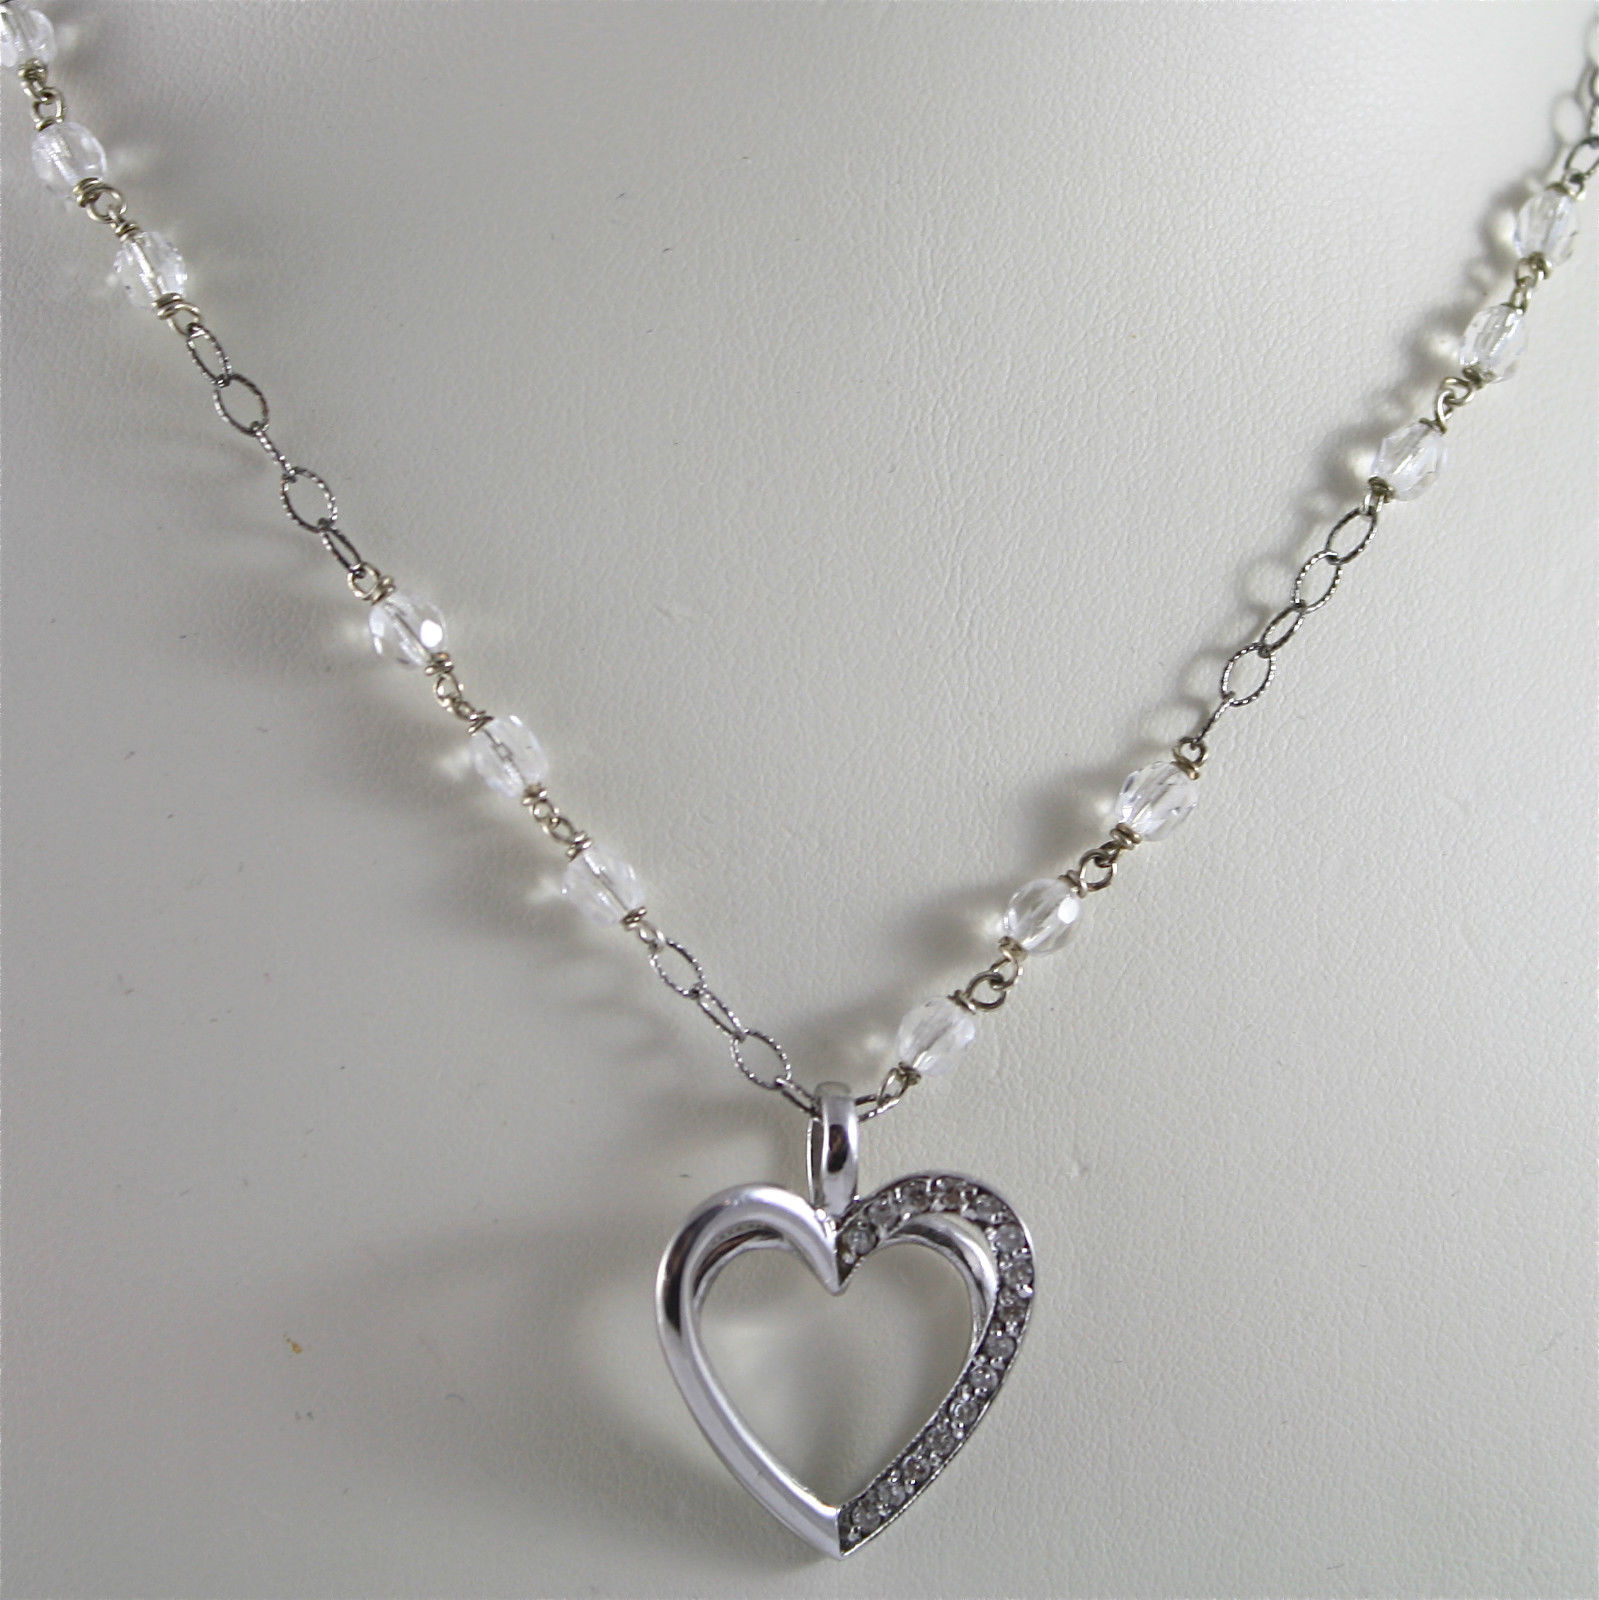 .925 RHODIUM SILVER NECKLACE WITH HEART PENDANT, CRISTAL AND ZIRCONIA